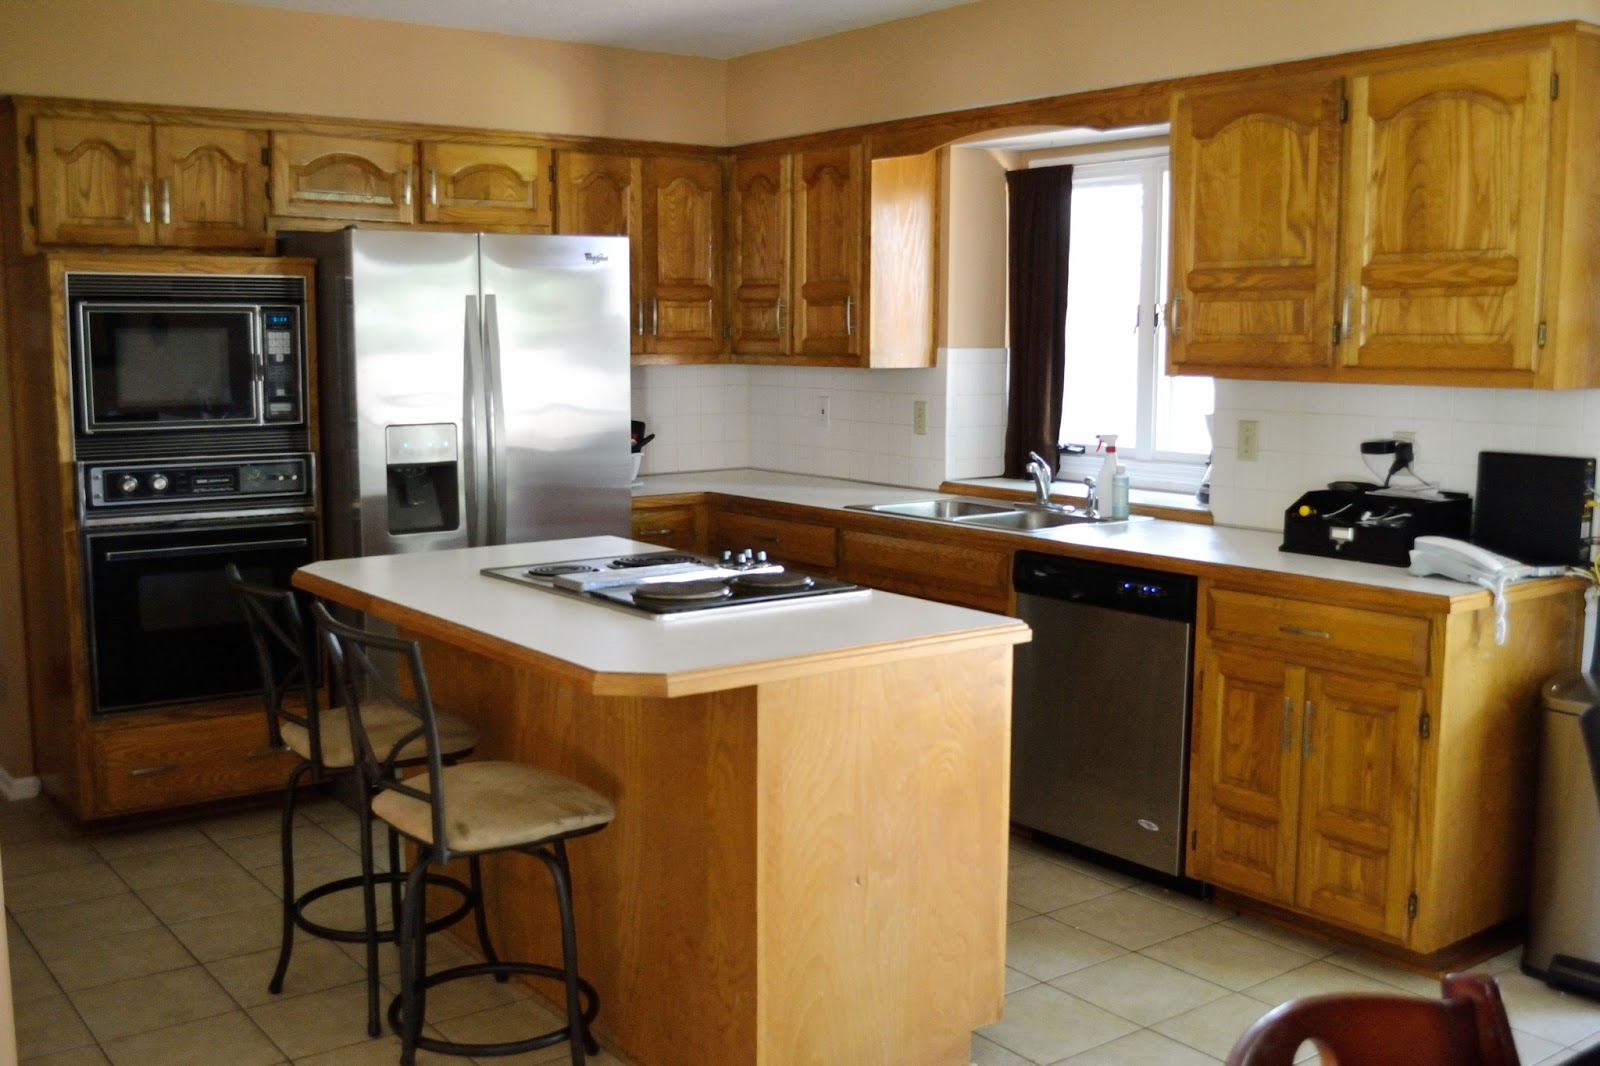 Wonderful image of  Green Life: How I Transformed My Kitchen Cabinets from Dark to White with #6E4113 color and 1600x1066 pixels